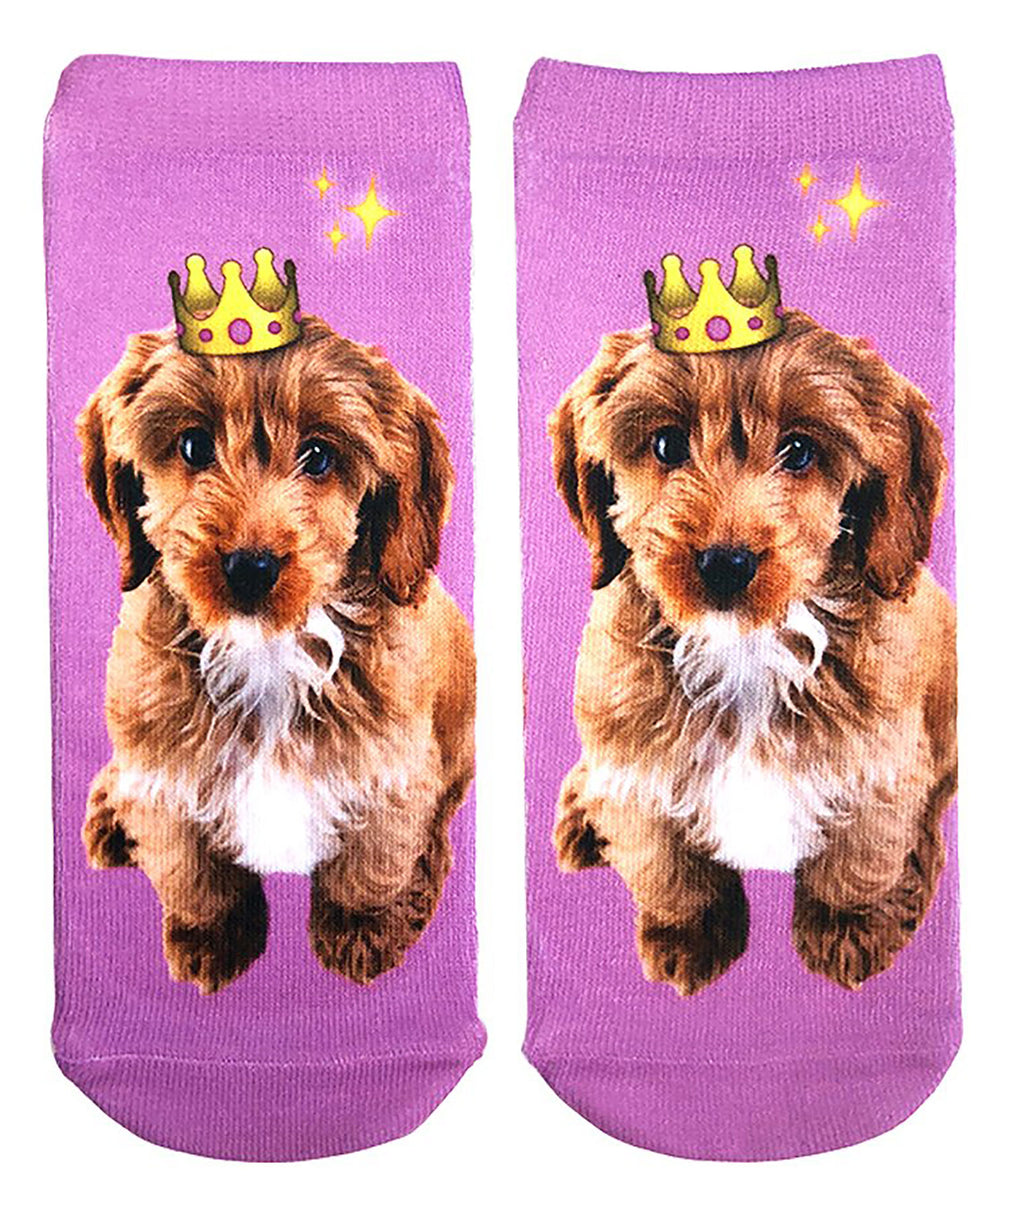 Living Royal Crown Puppy Socks